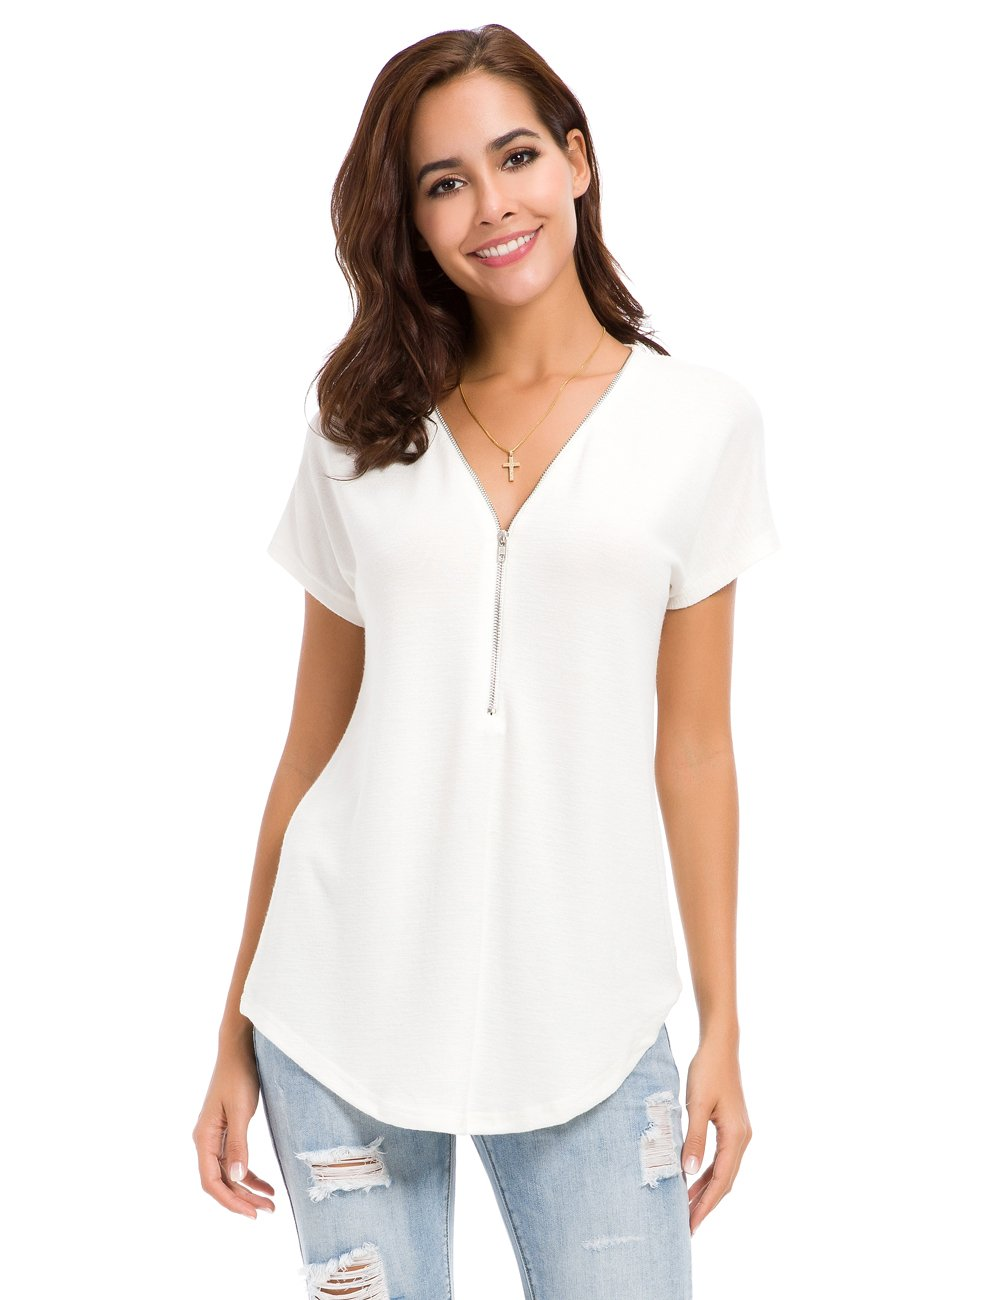 LUSMAY Womens Loose Fitting Zip Up Deep V Neck Short Sleeve Tops Tunic Casual T Shirts Blouse